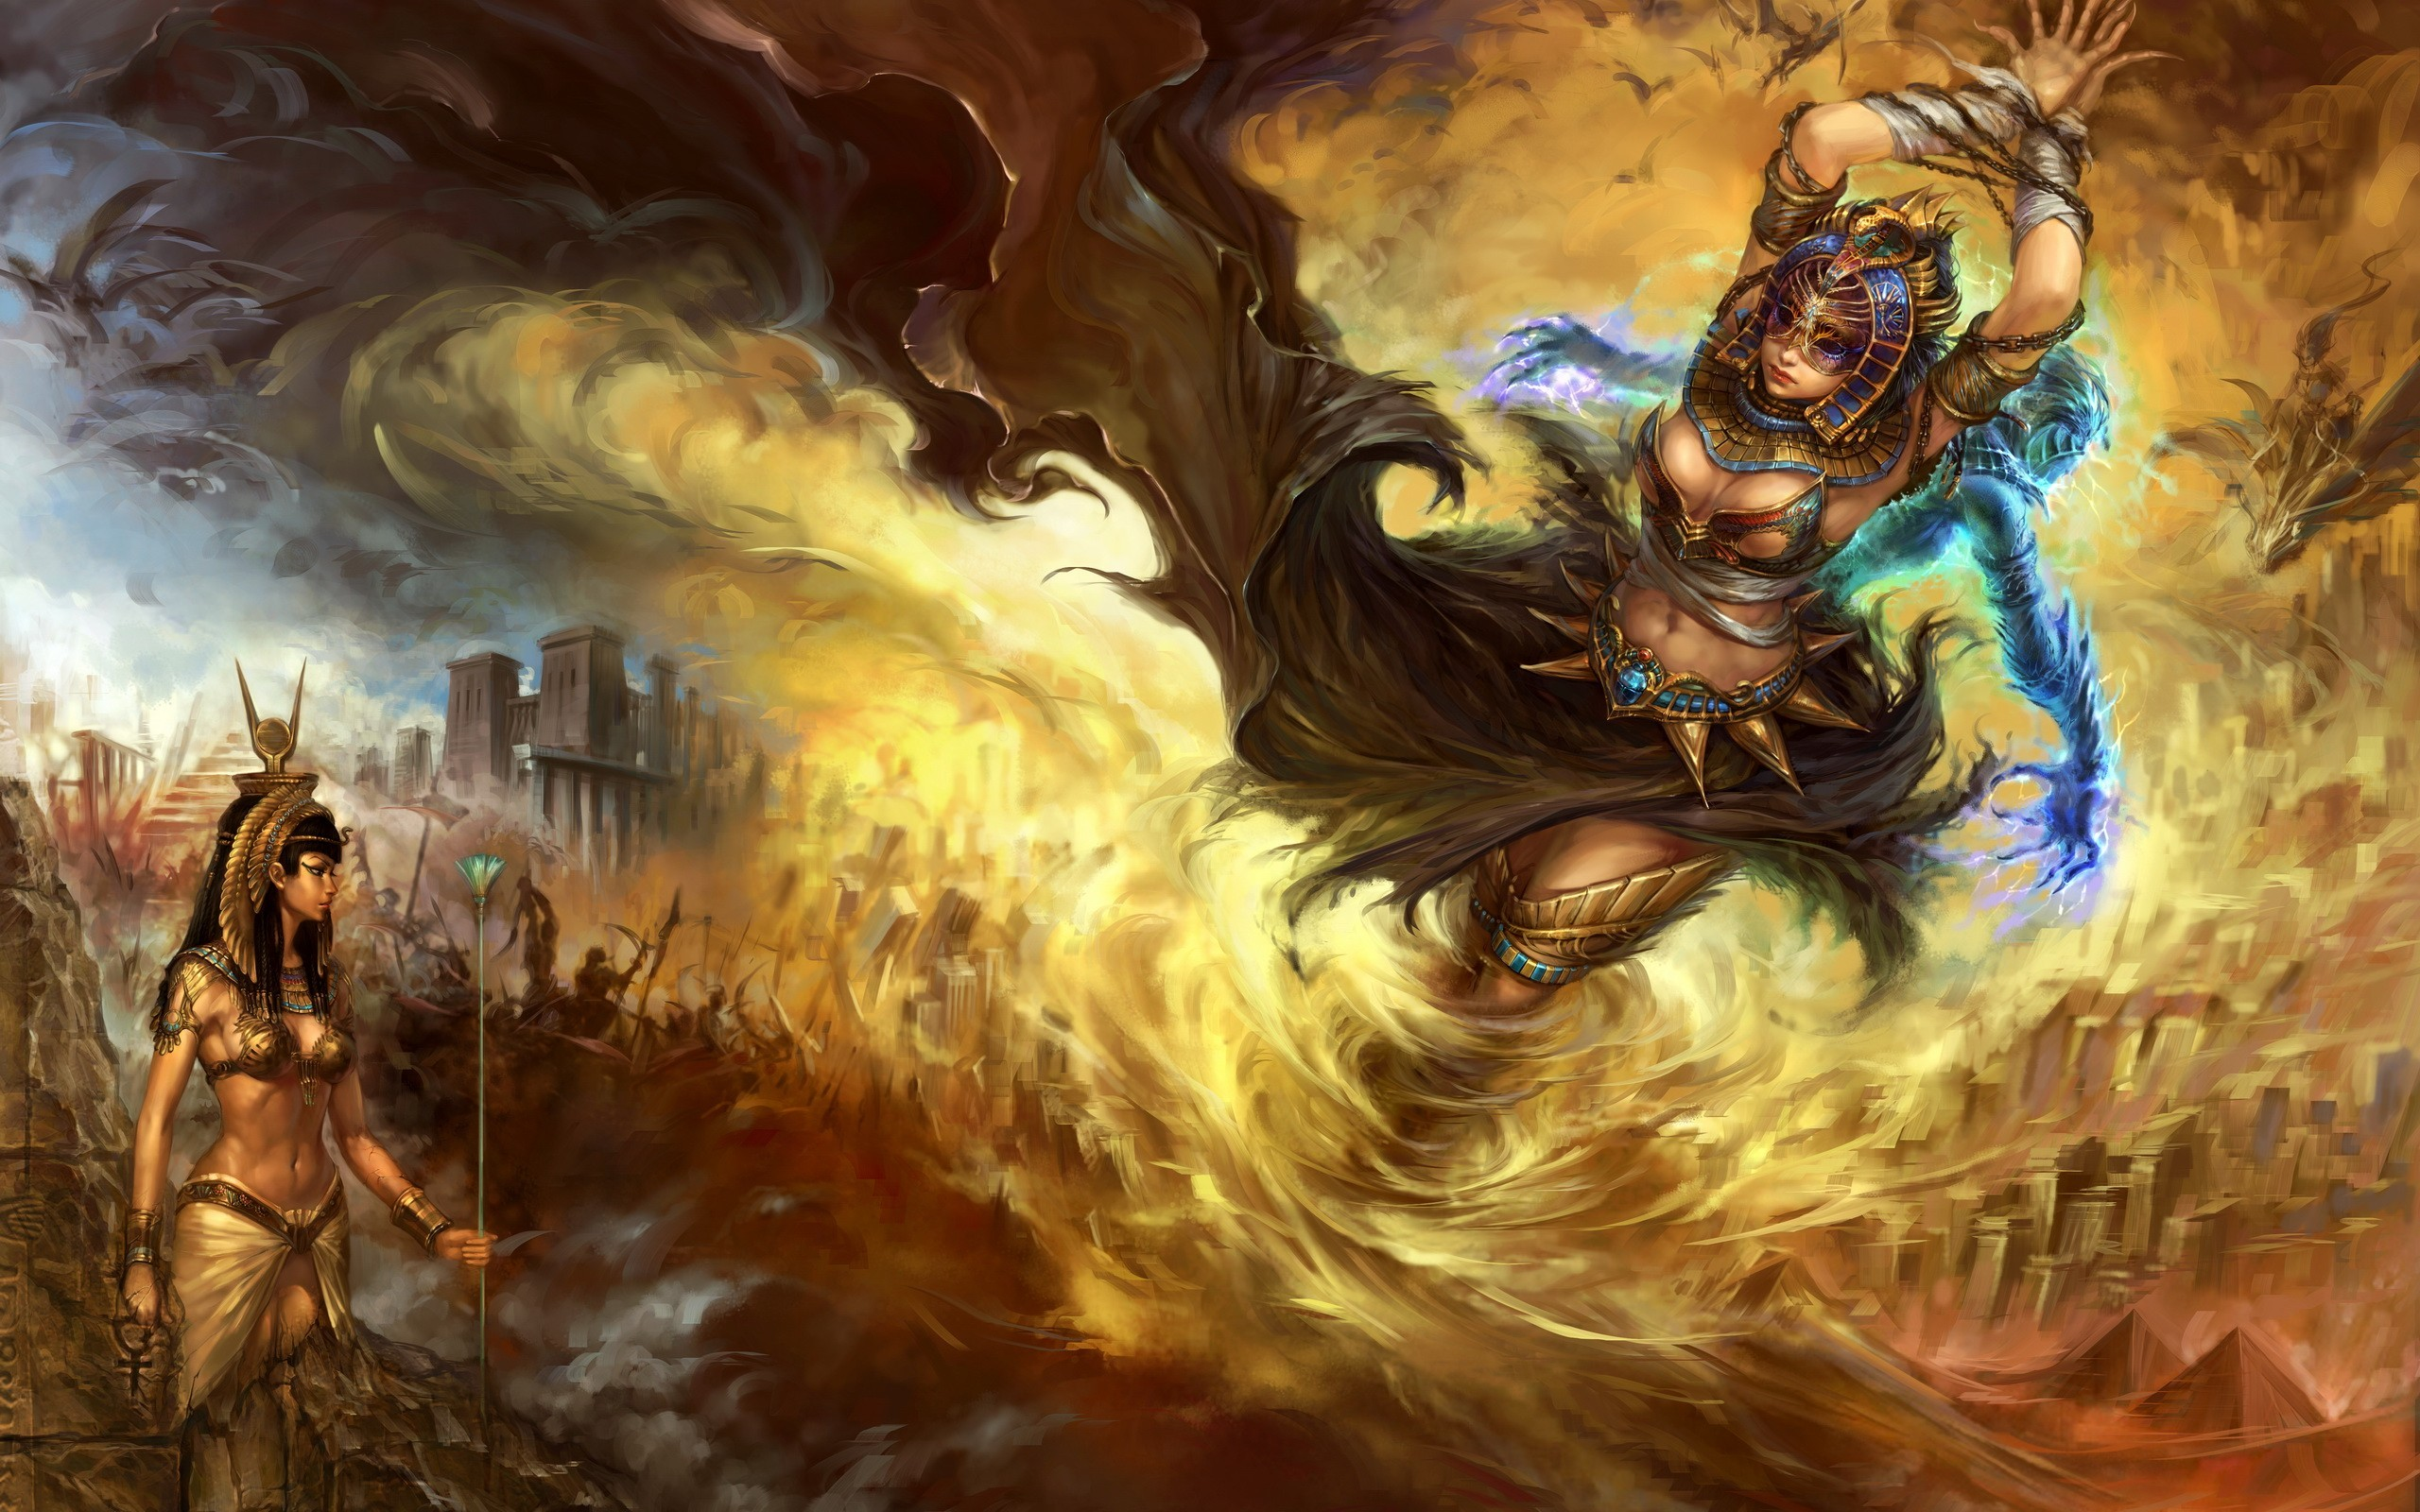 2560x1600 Egypt Fantasy Wallpaper Art Artwork